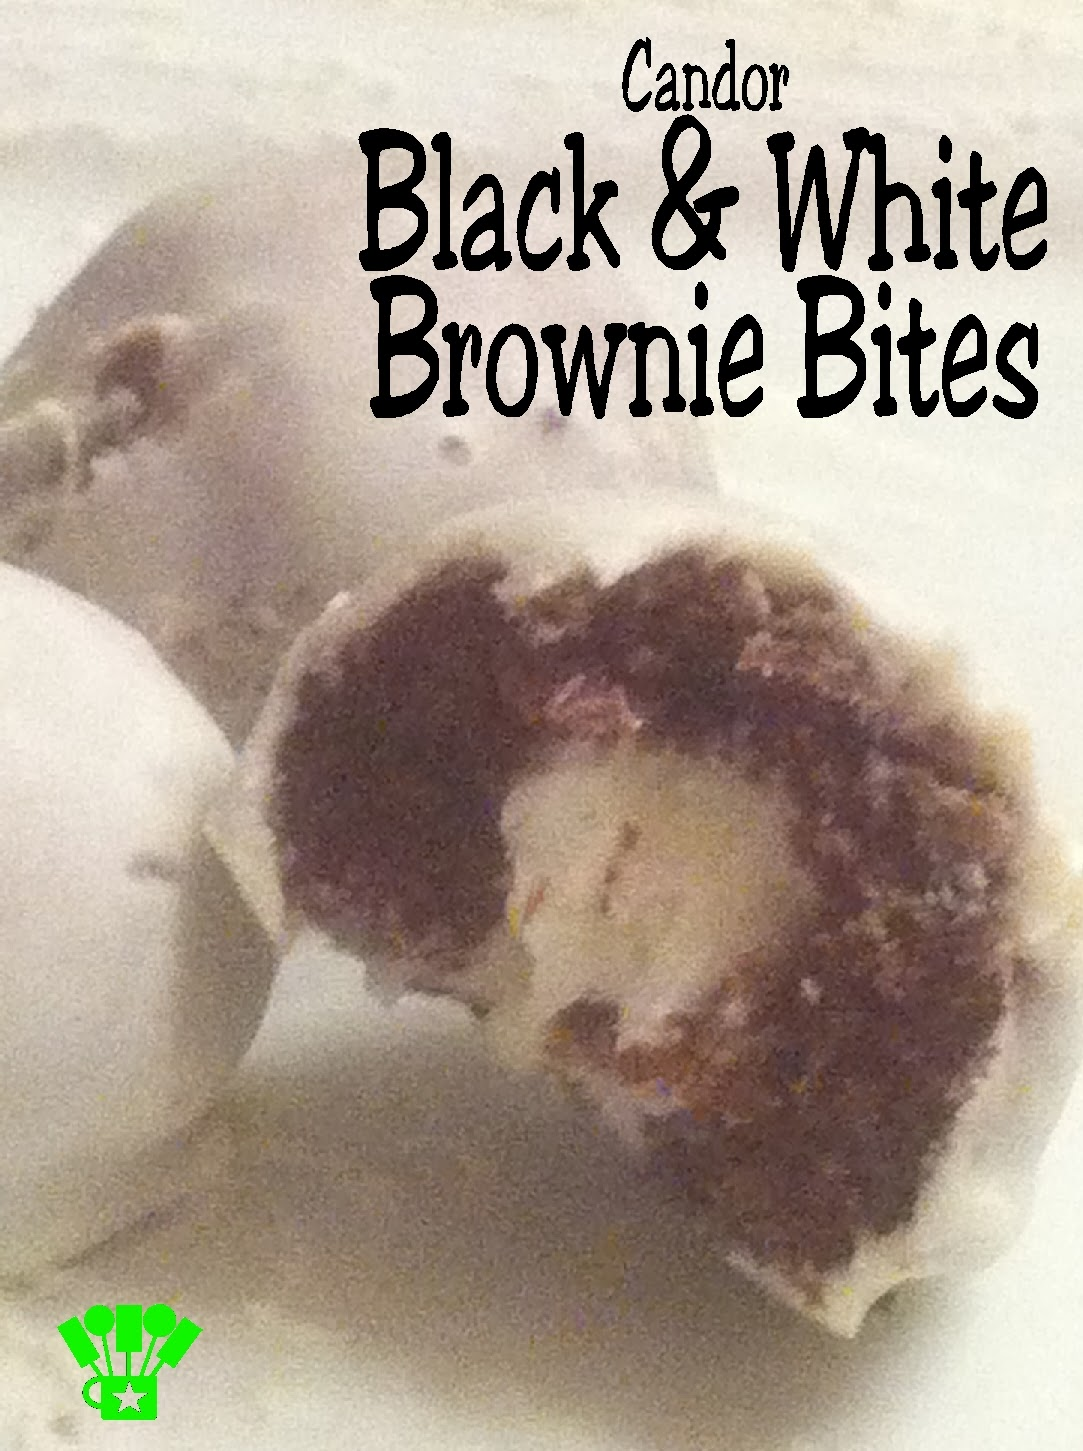 Black and White Brownie Bites from Faction Candor at a Divergent Party.